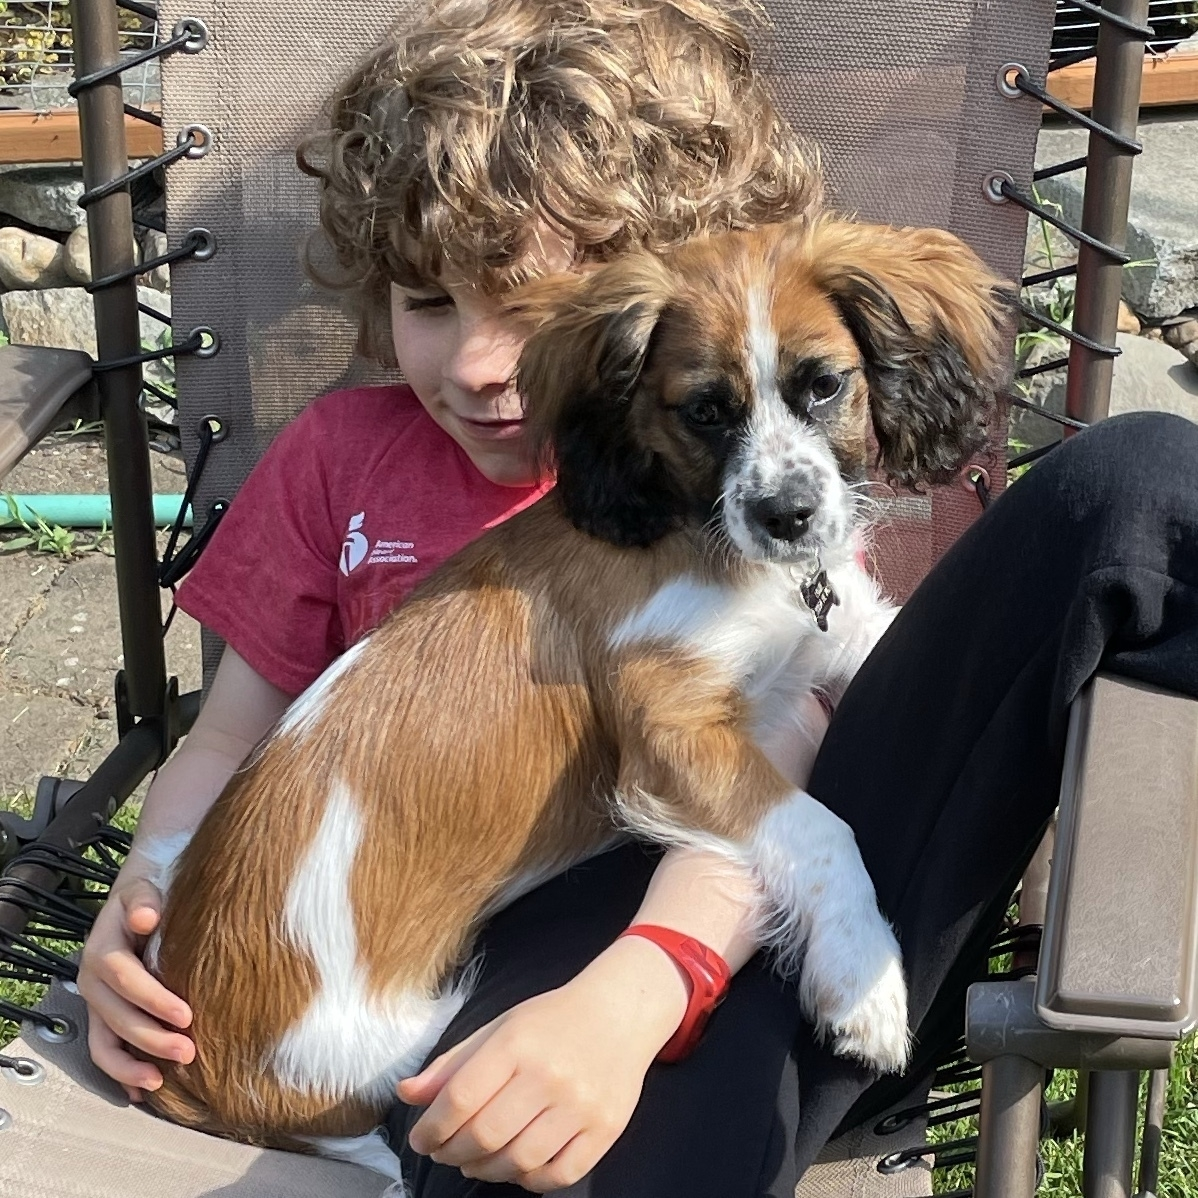 Young boy with a brown and white puppy on his lap.